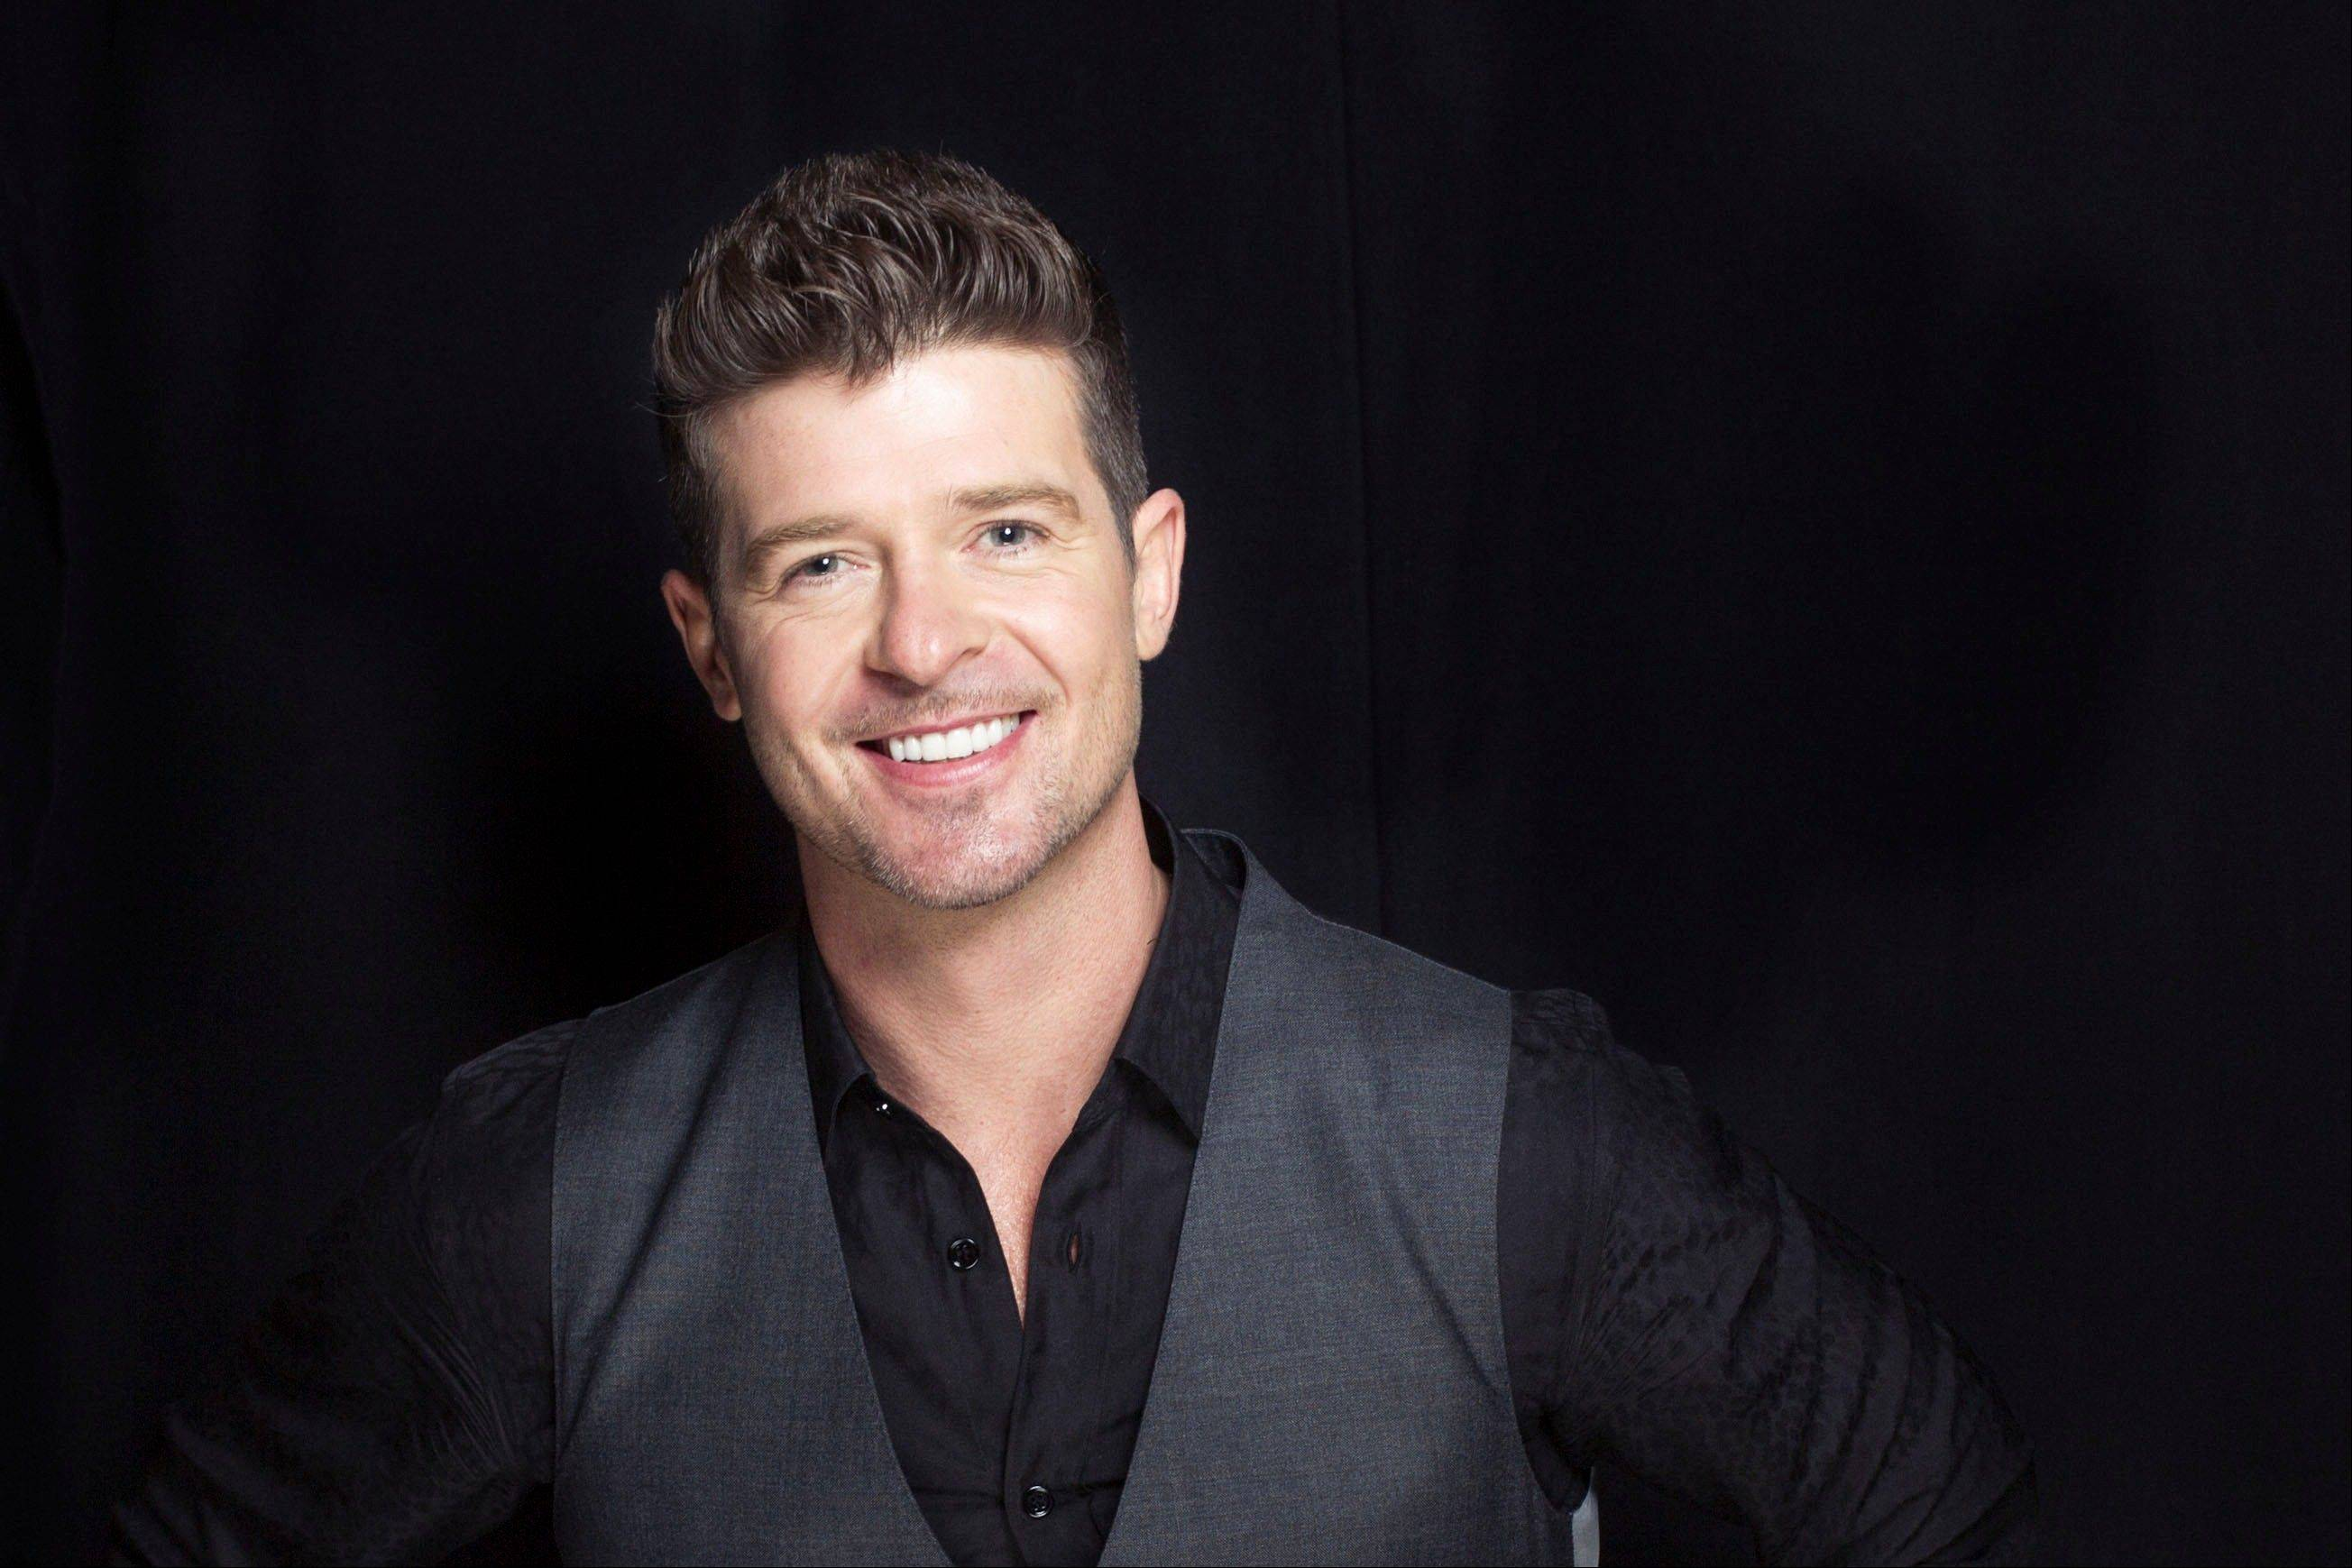 R&B singer-songwriter Robin Thicke will appear at the V103 25th Anniversary concert at 7 p.m. Saturday, Oct. 5, at the Allstate Arena in Rosemont.